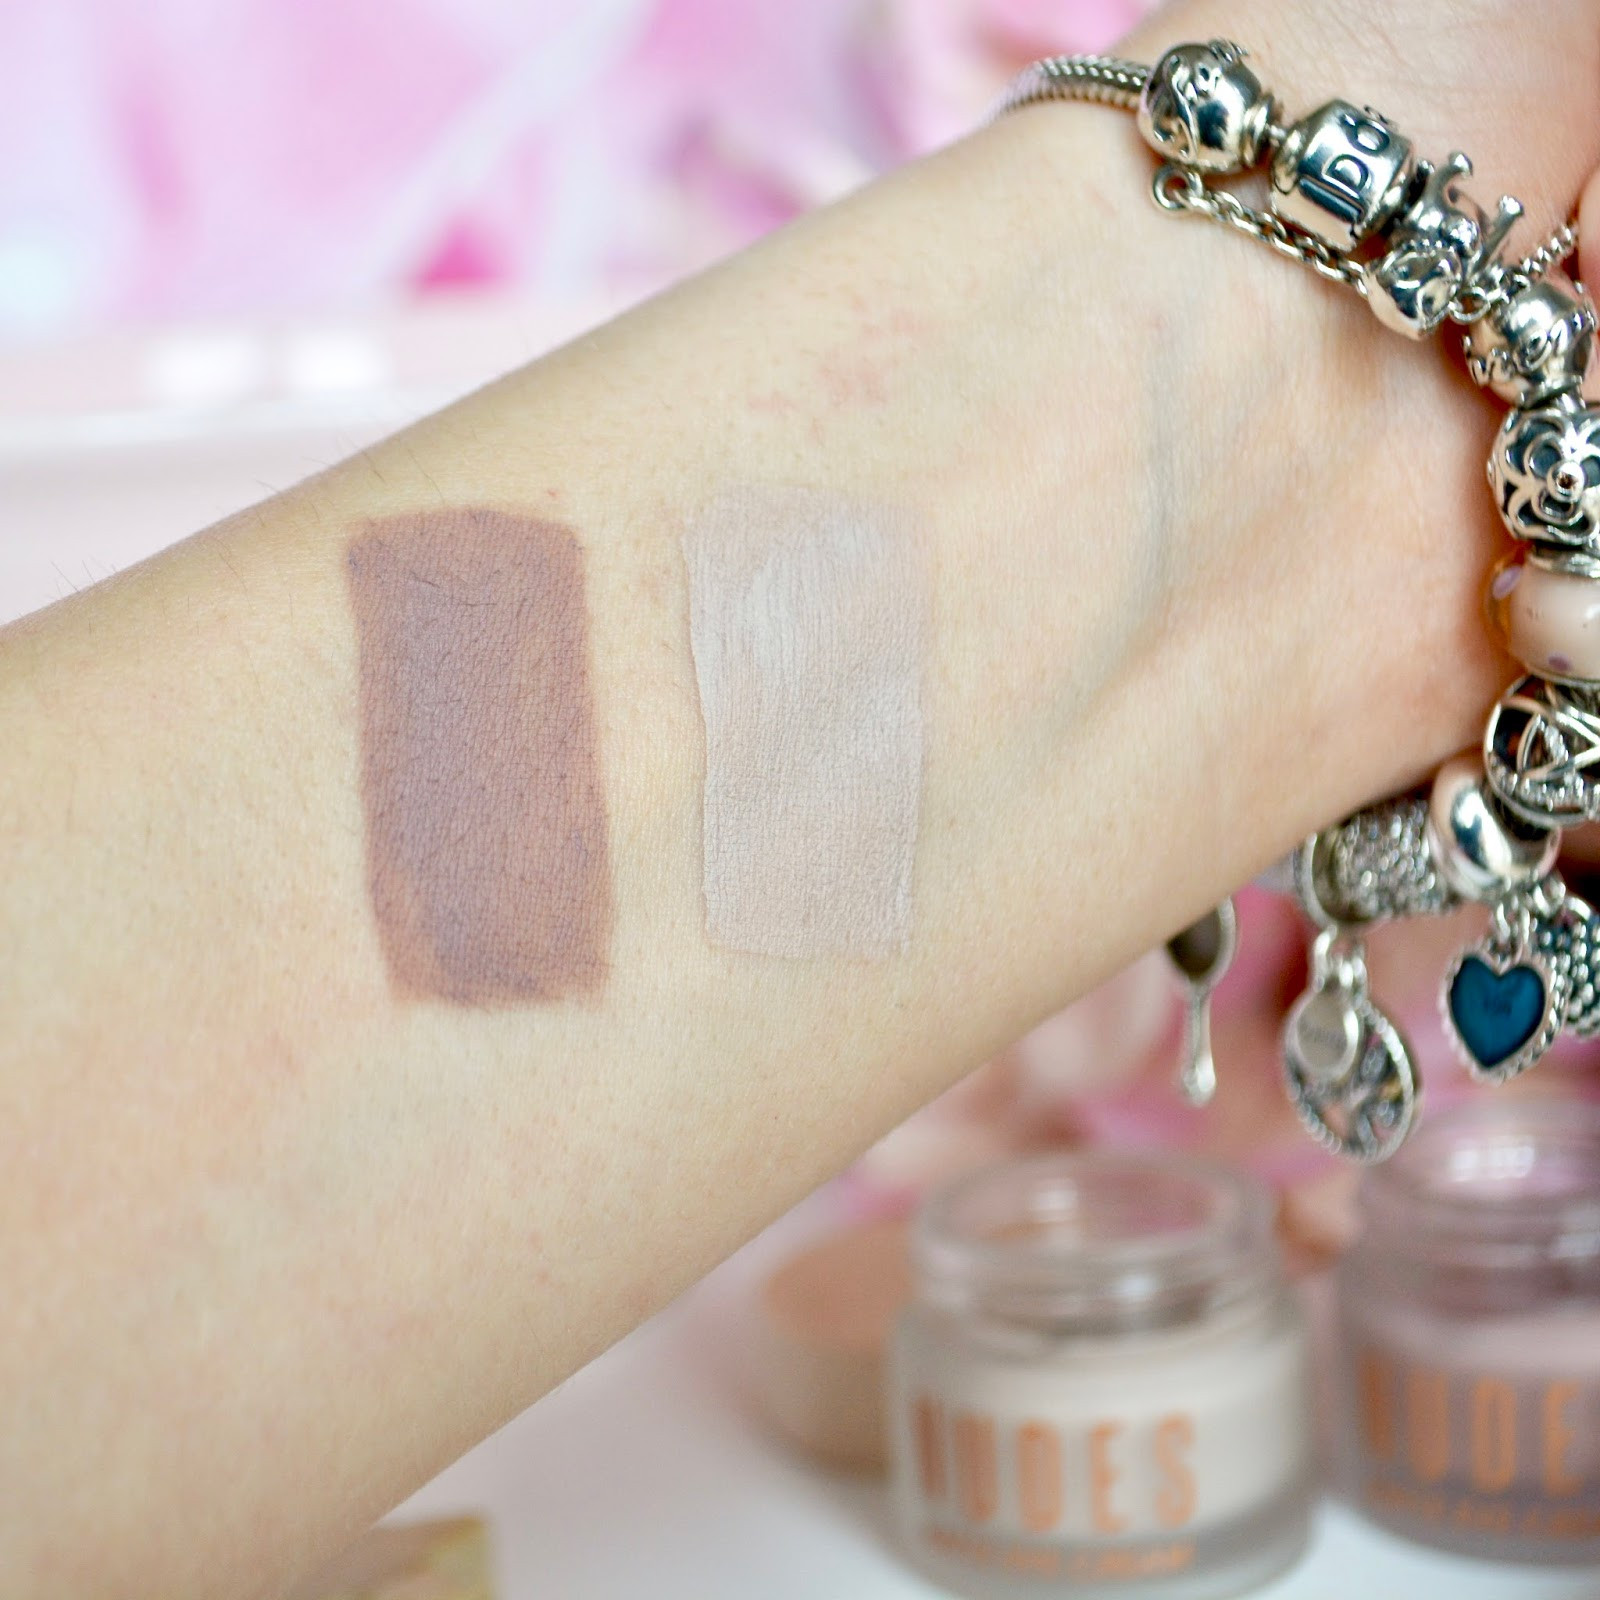 Primark Nudes Matte Cream Eyeshadows | Review